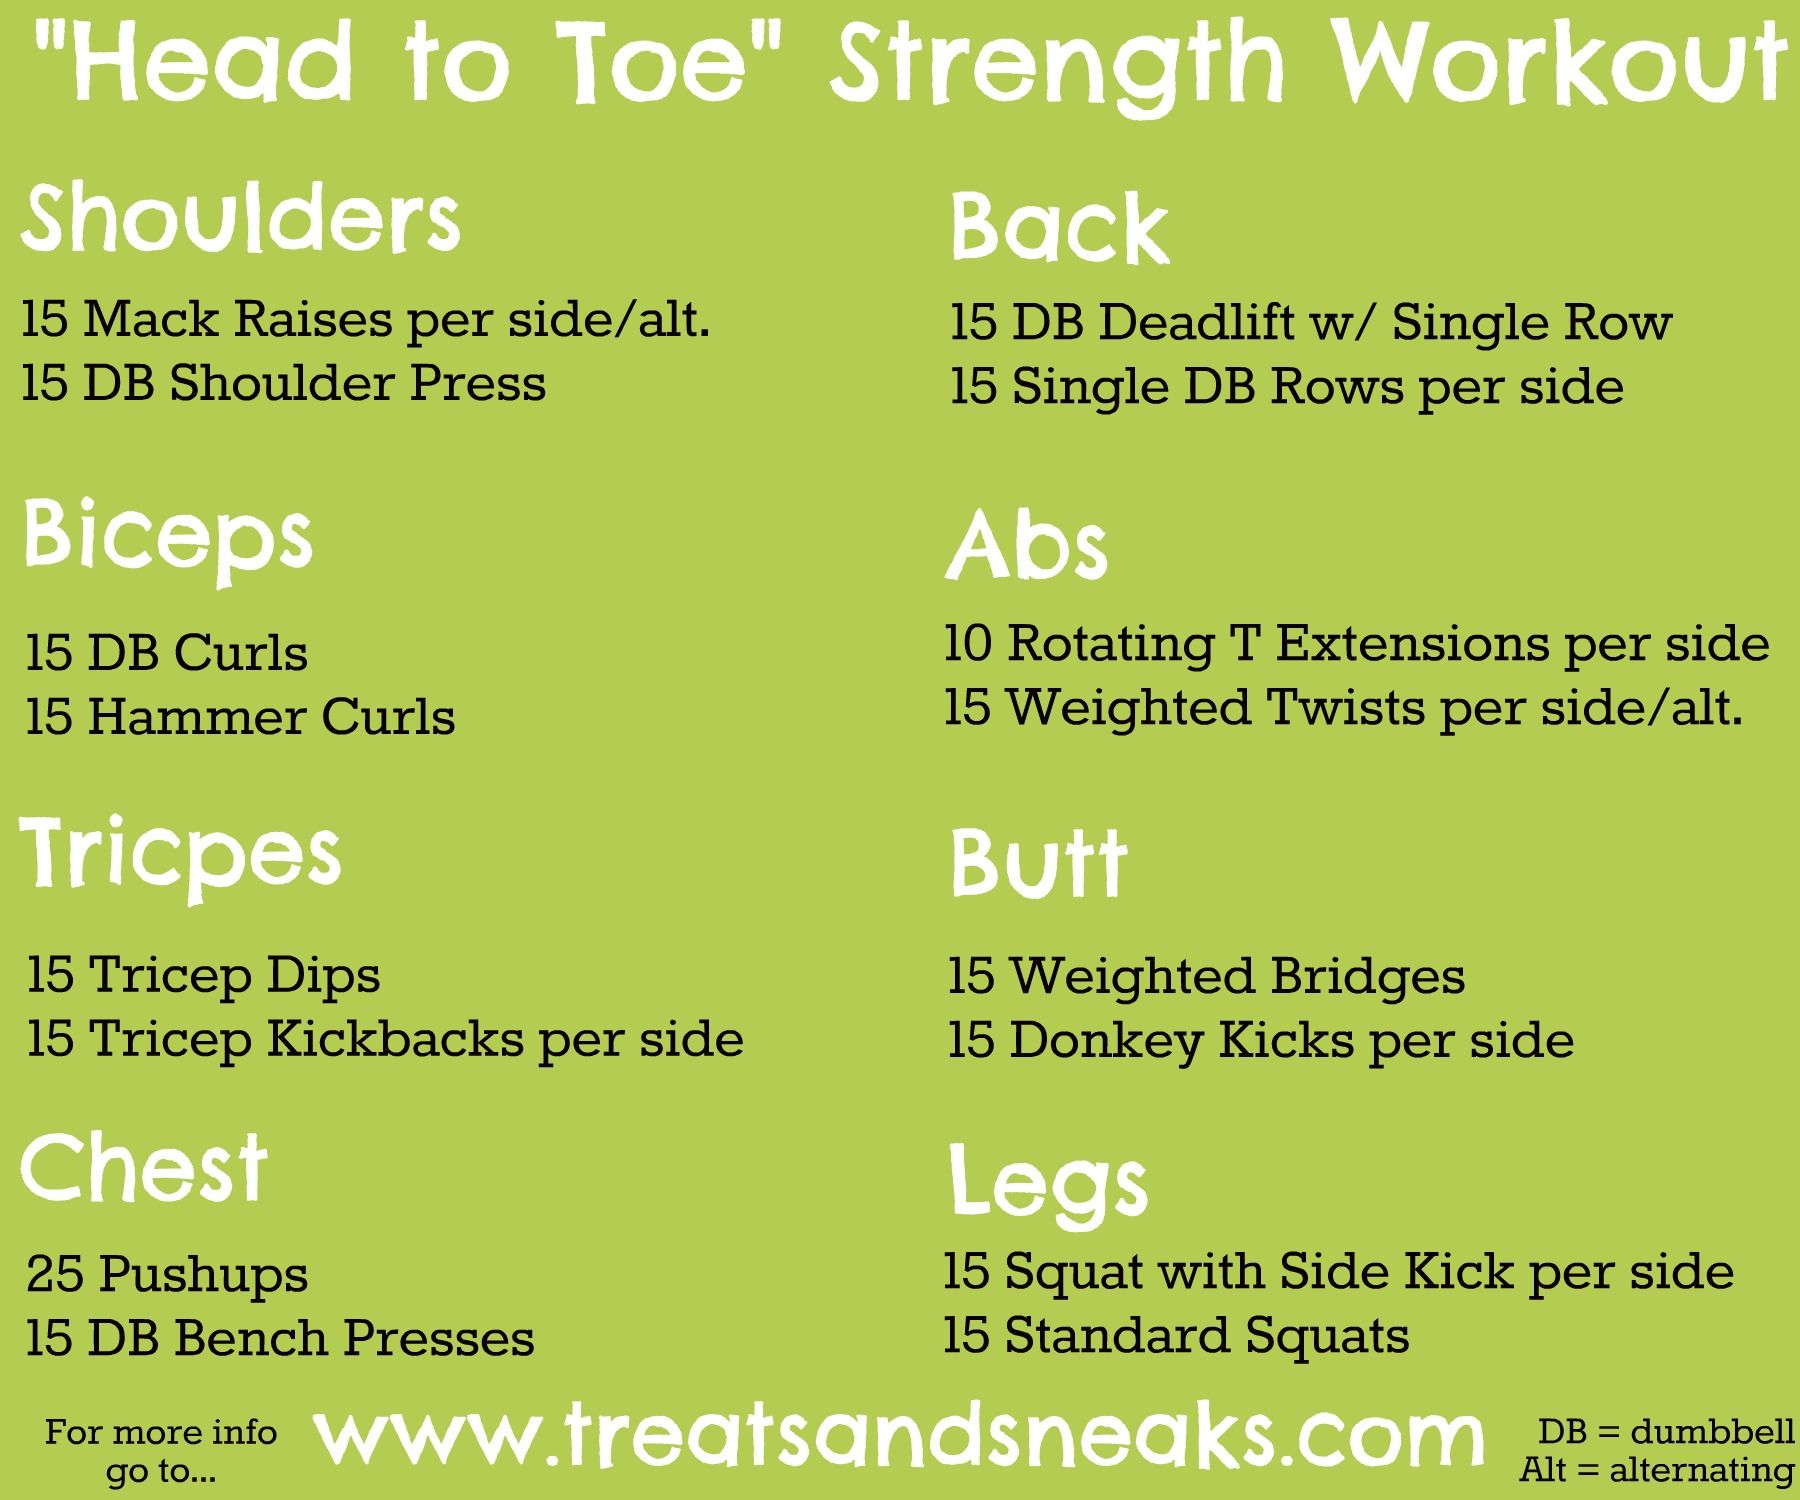 Strength Training: Head To Toe Strength Workout.